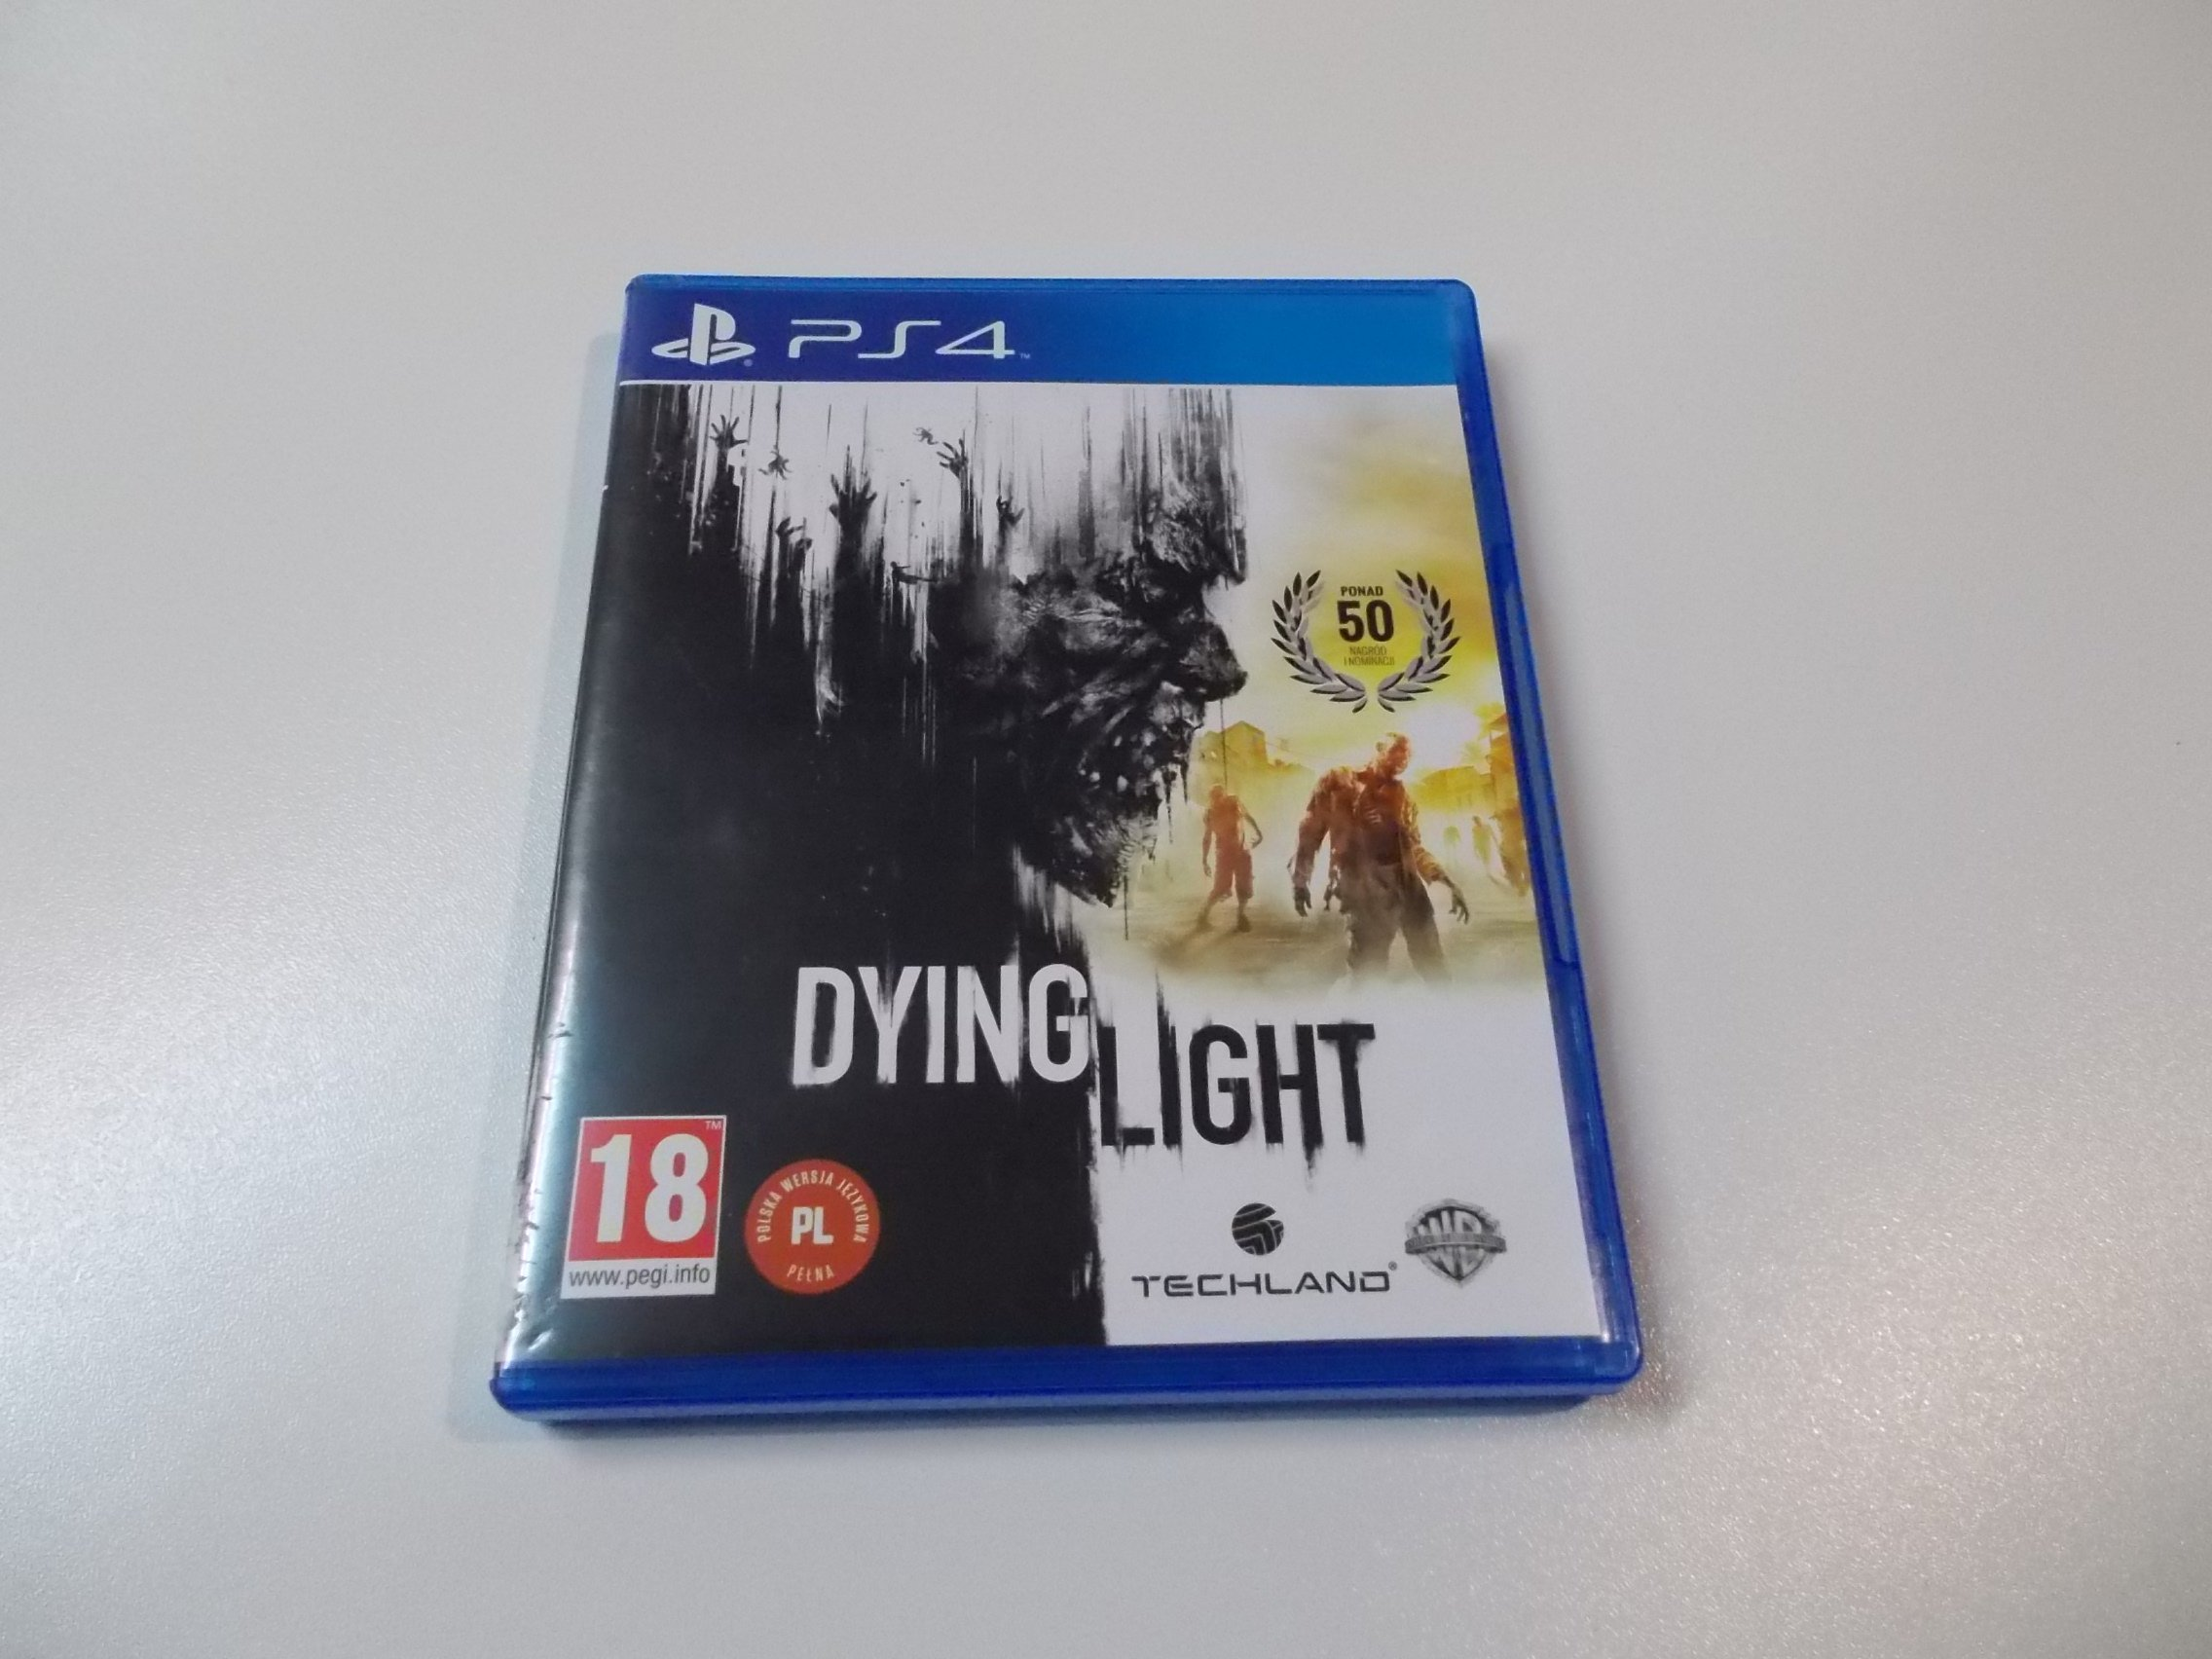 Dying Light - GRA Ps4 - Sklep